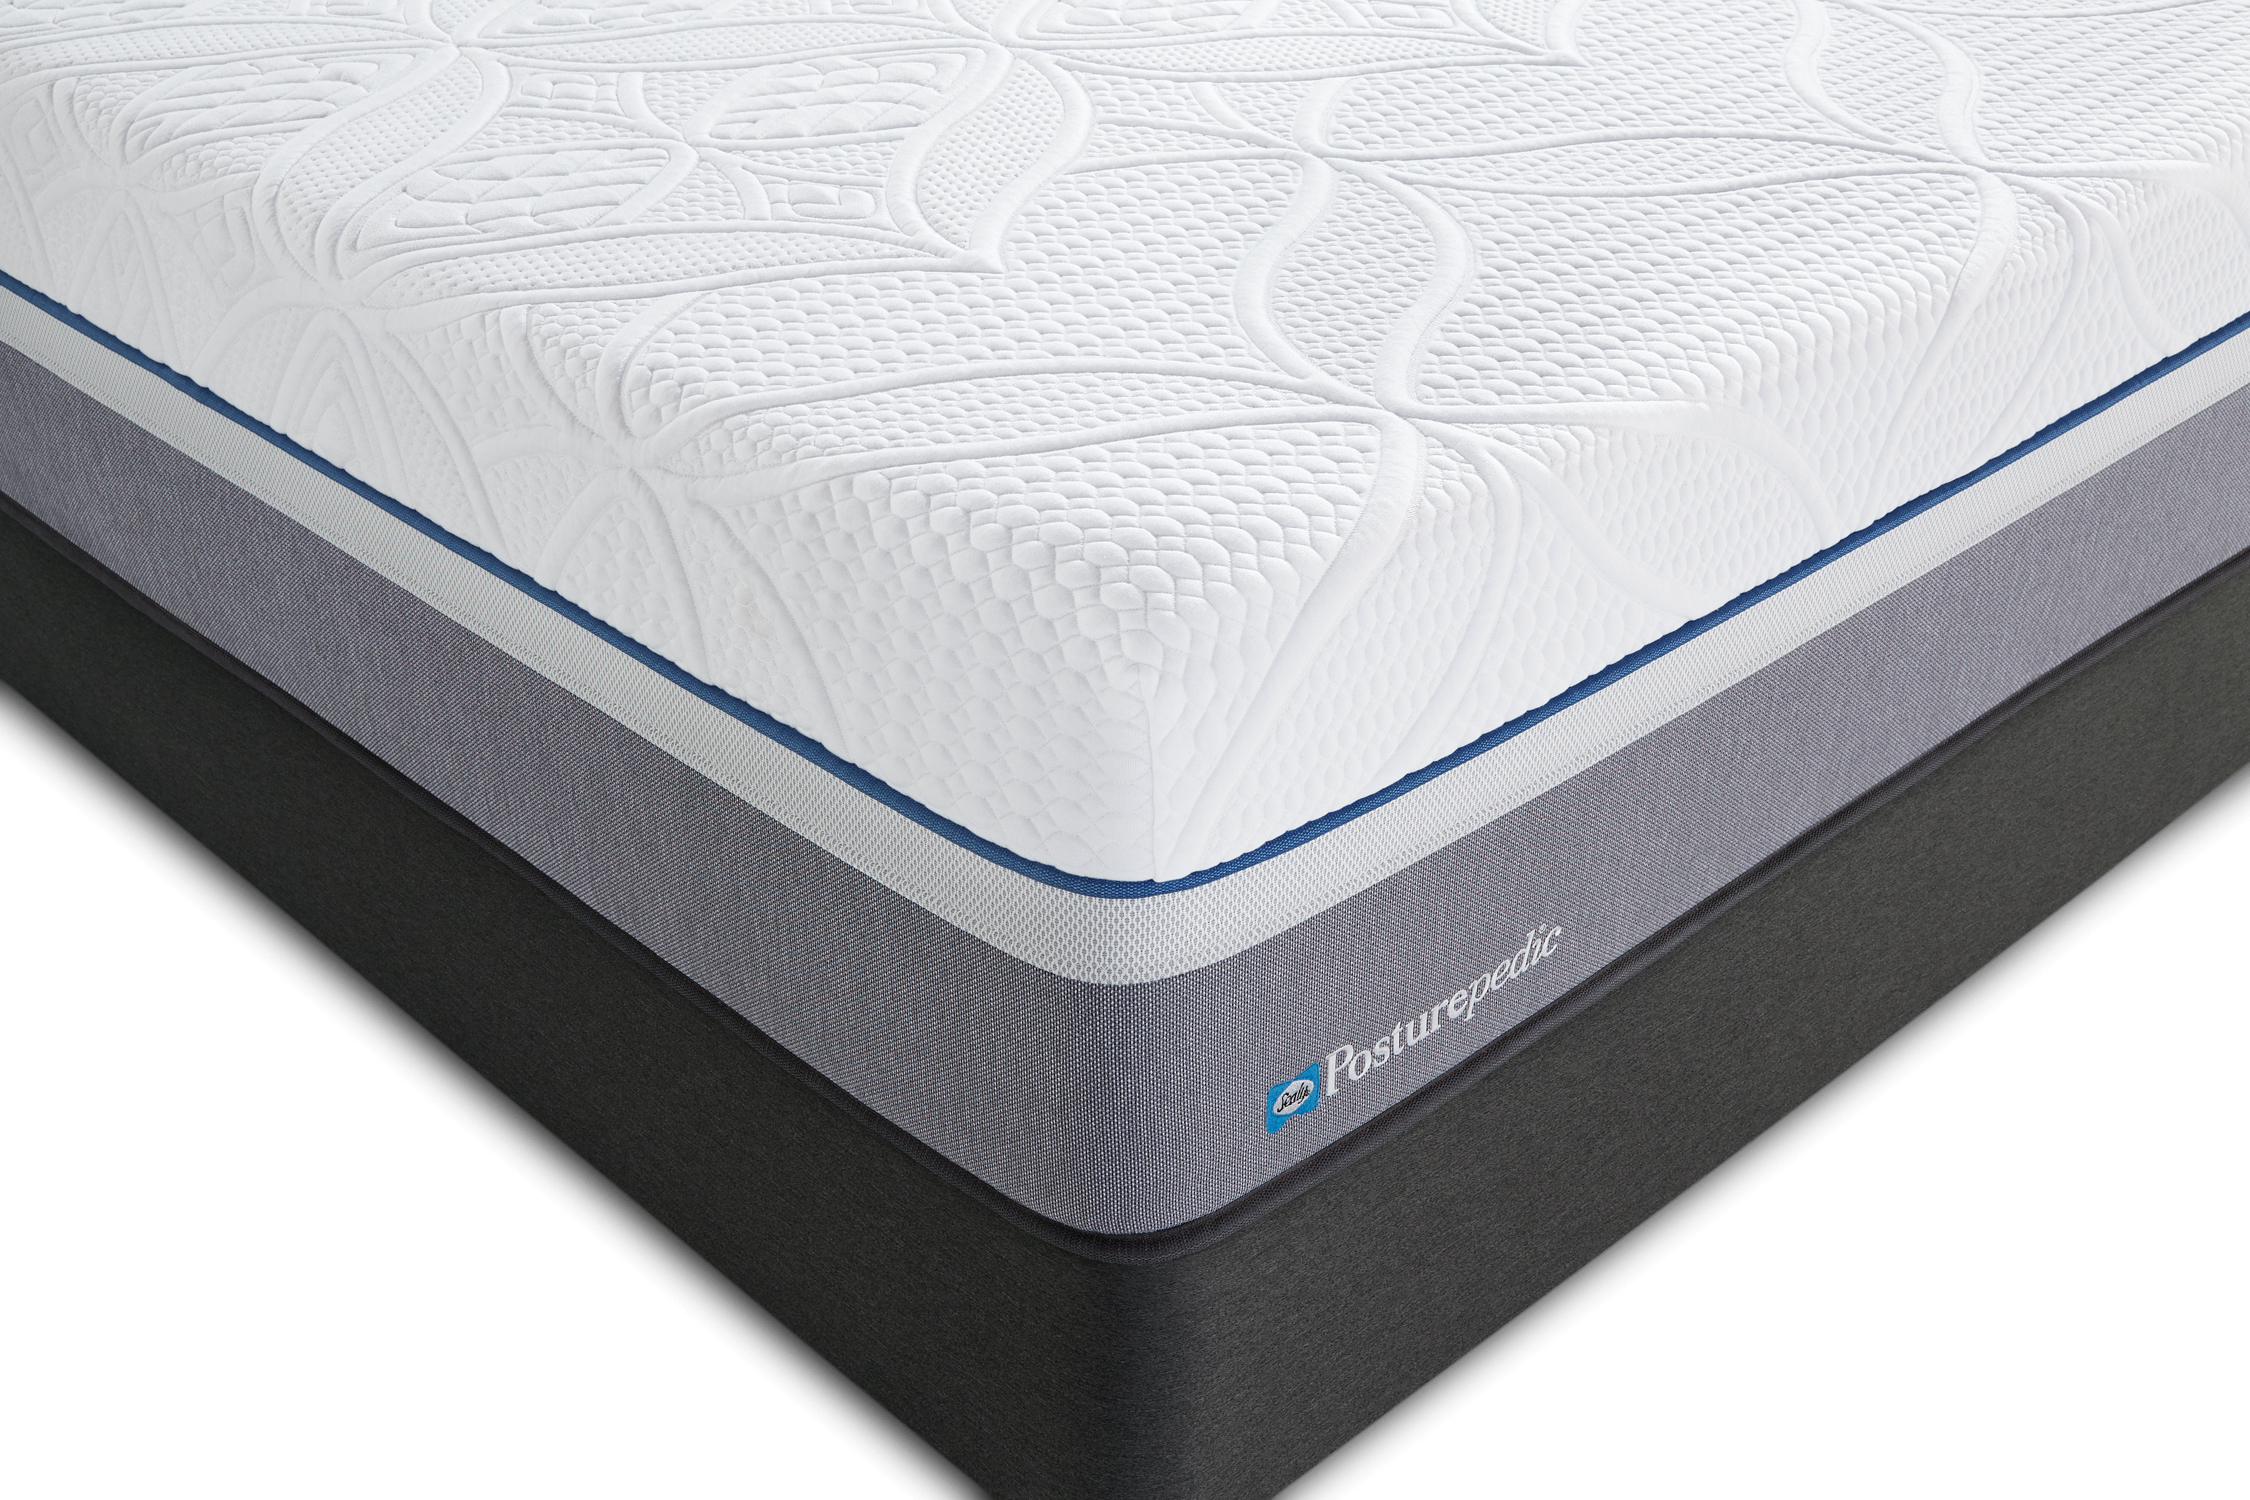 Sealy Posturepedic Cobalt II Firm Twin Extra Long Mattress Only